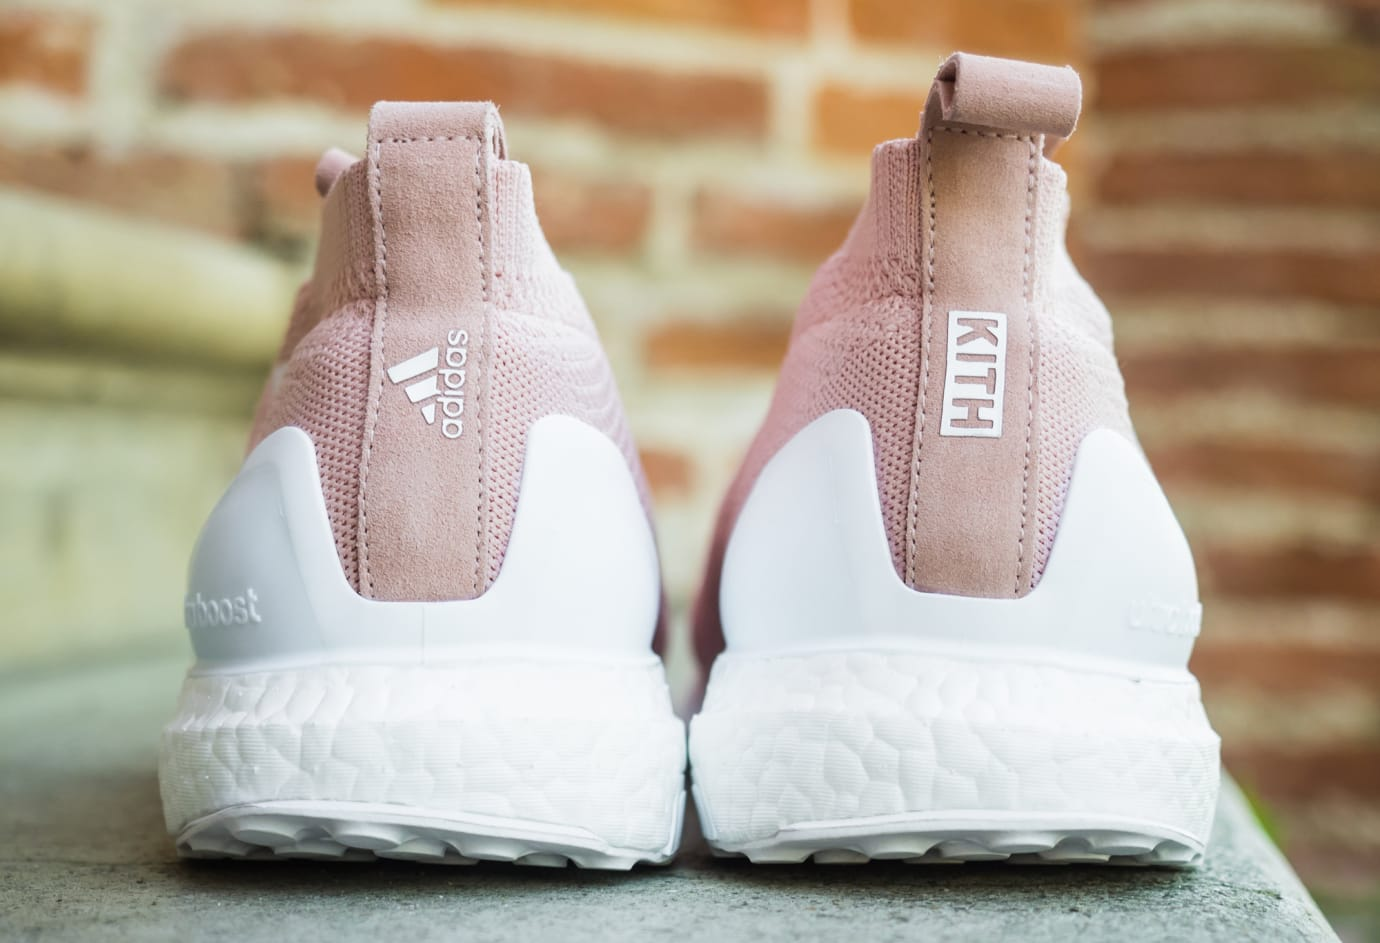 reputable site 0fbf9 21a20 Kith Adidas Ultra Boost Ace 16 Flamingo CM7890 | Sole Collector